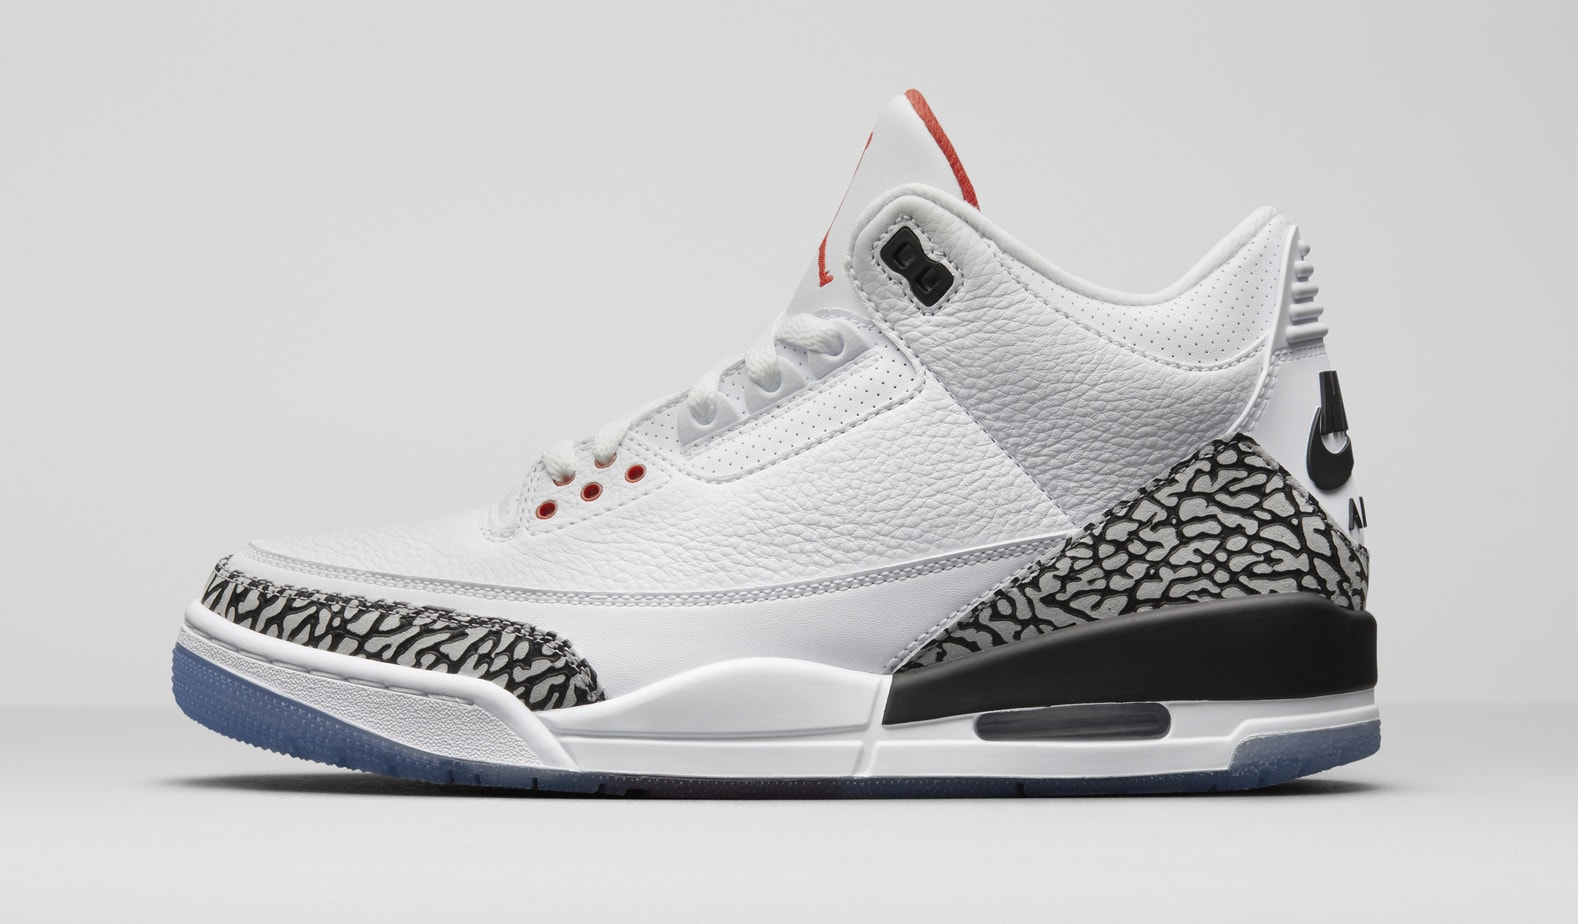 8ef435a094a ... spain air jordan 3 nrg white cement release date february 14 2018.  price 200.